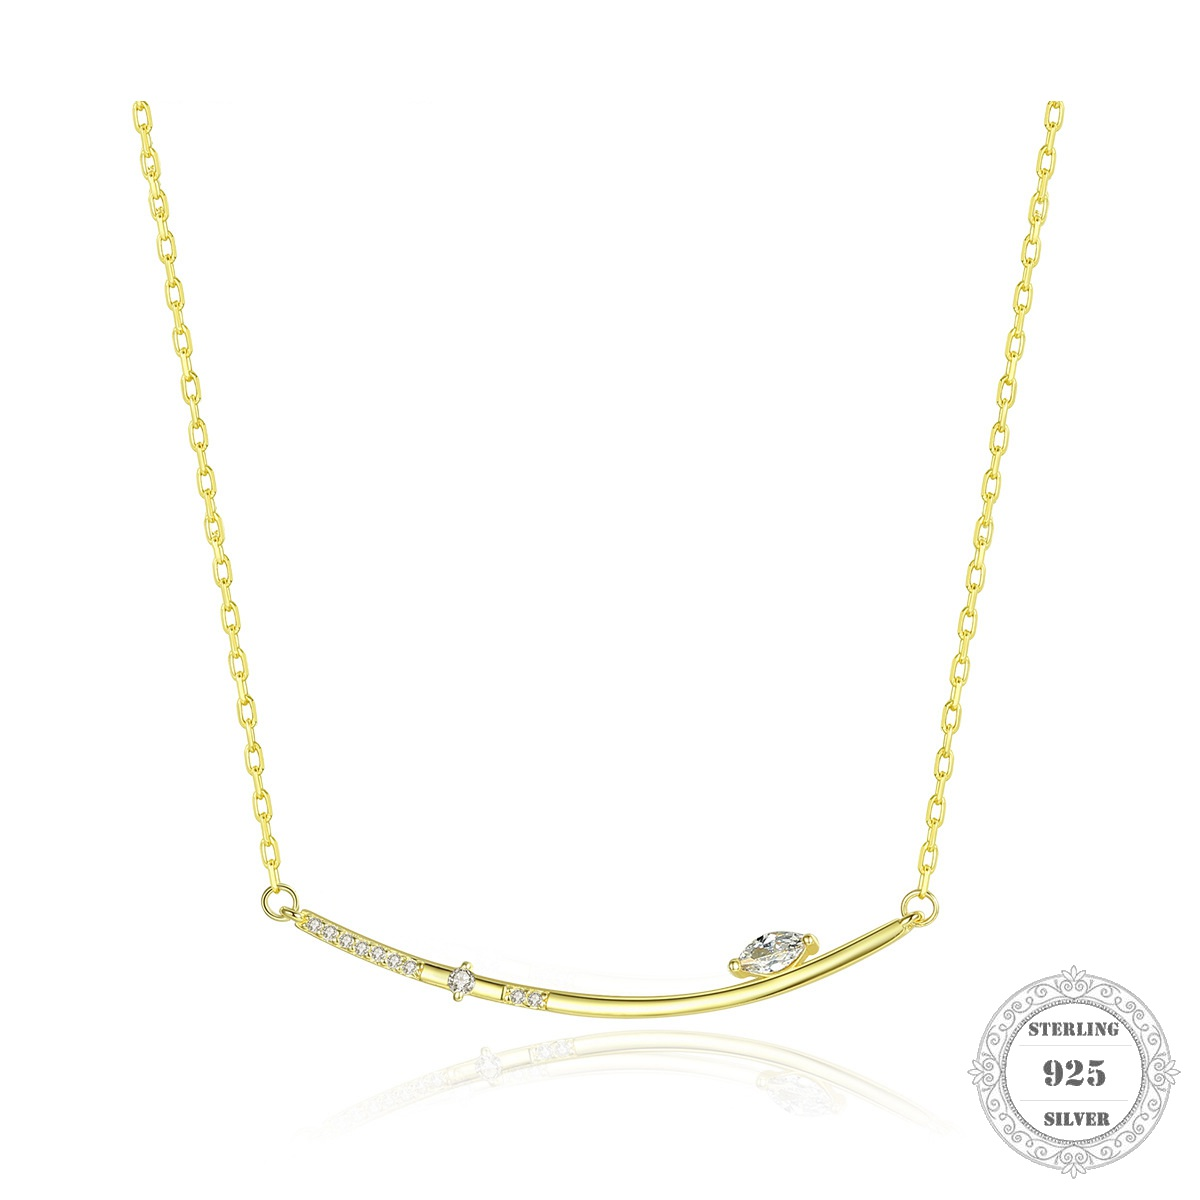 Charm Necklace Star White Zircon Spring Ts Fashion Jewelry Thomas Link Chain 925 Sterling Silver Classic Gift For Women Girl